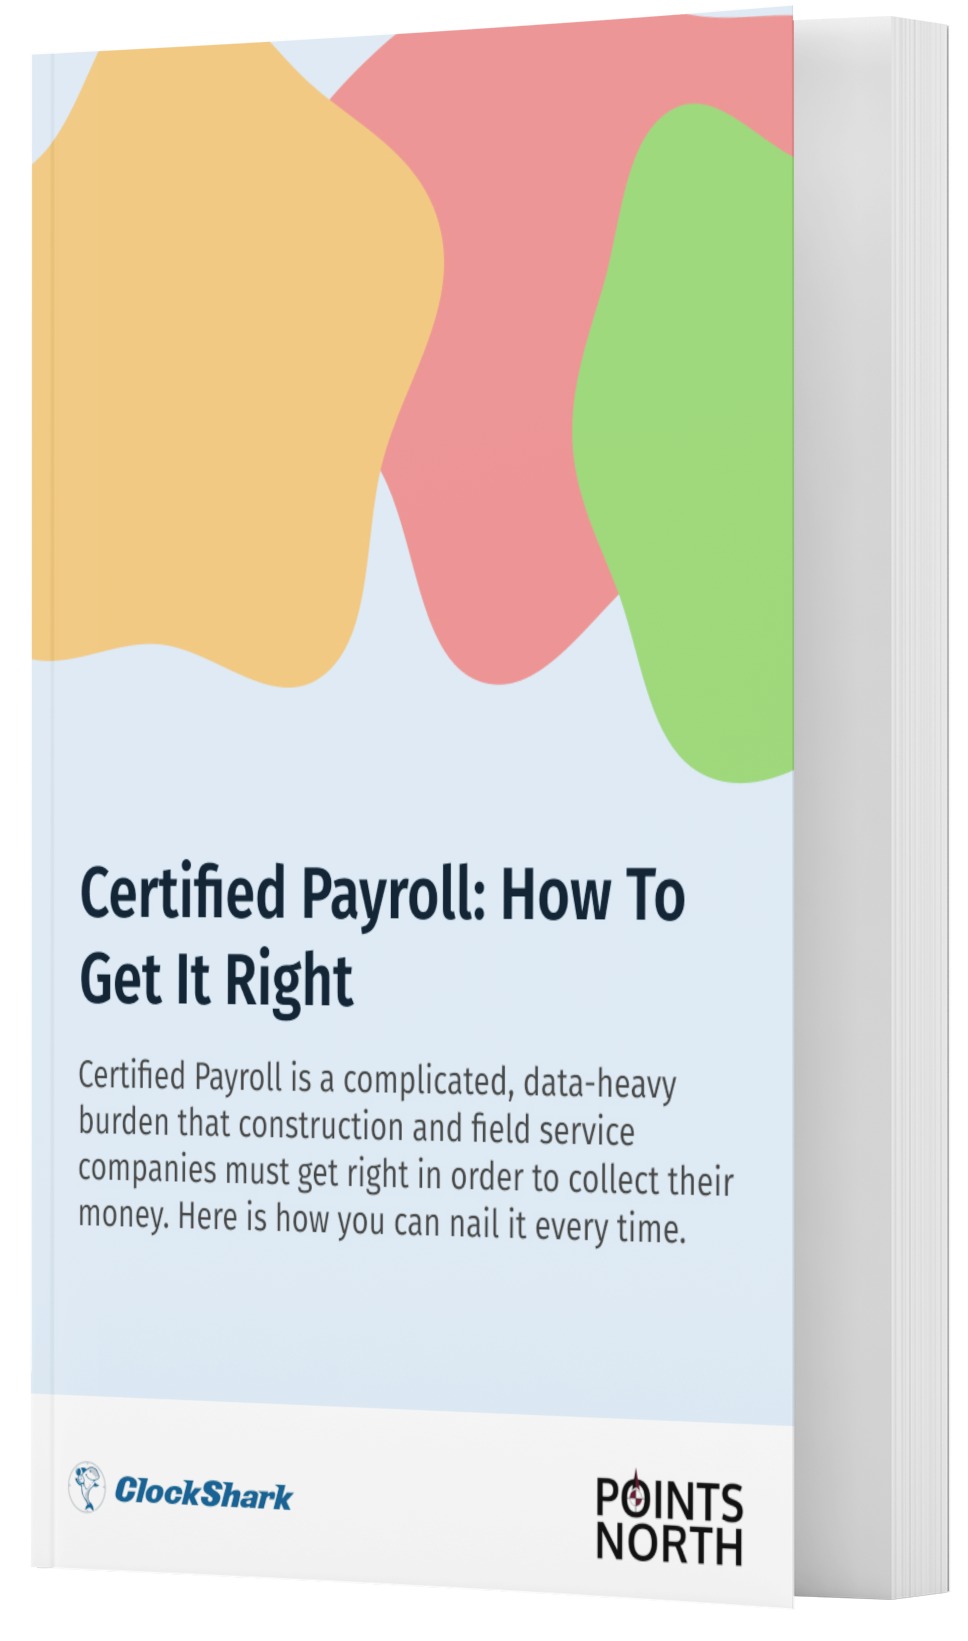 Certified Payroll: How To Get It Right